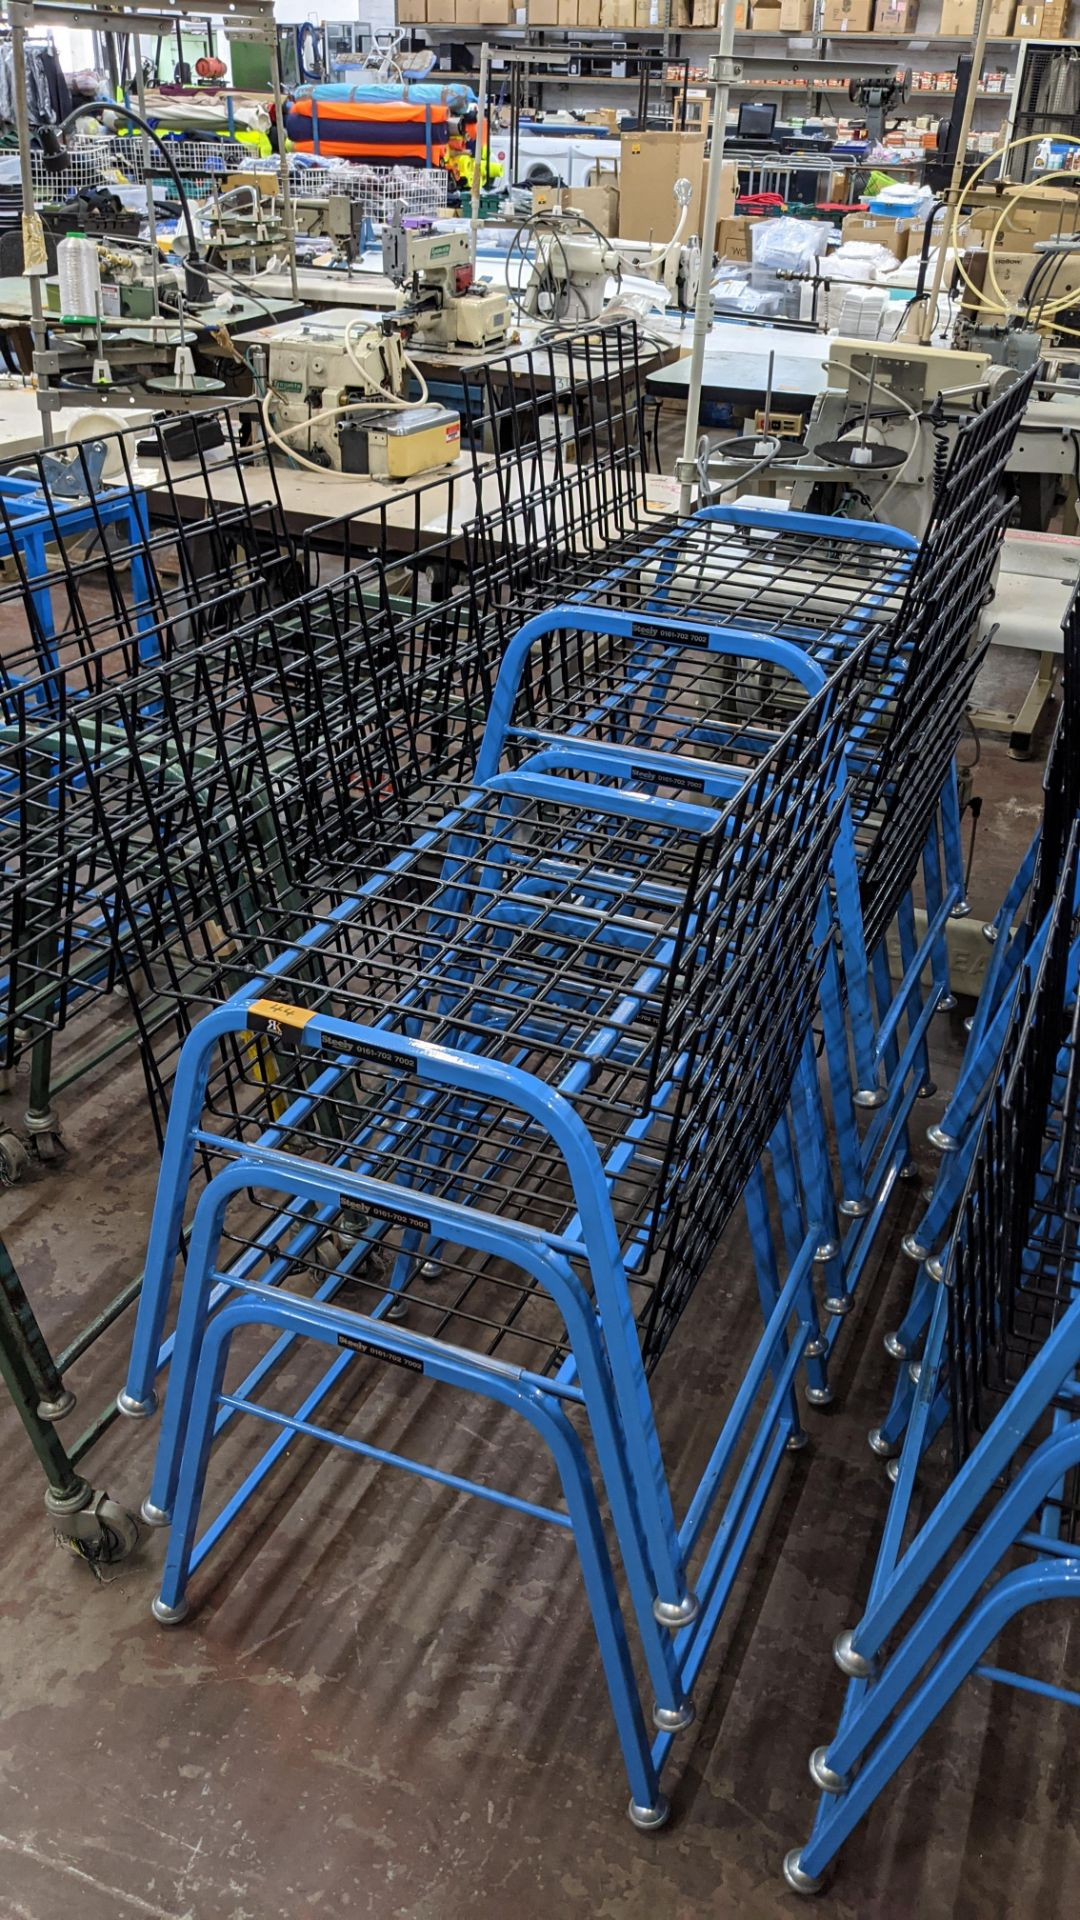 7 off matching blue stacking Steely mobile machinists baskets - Image 2 of 5